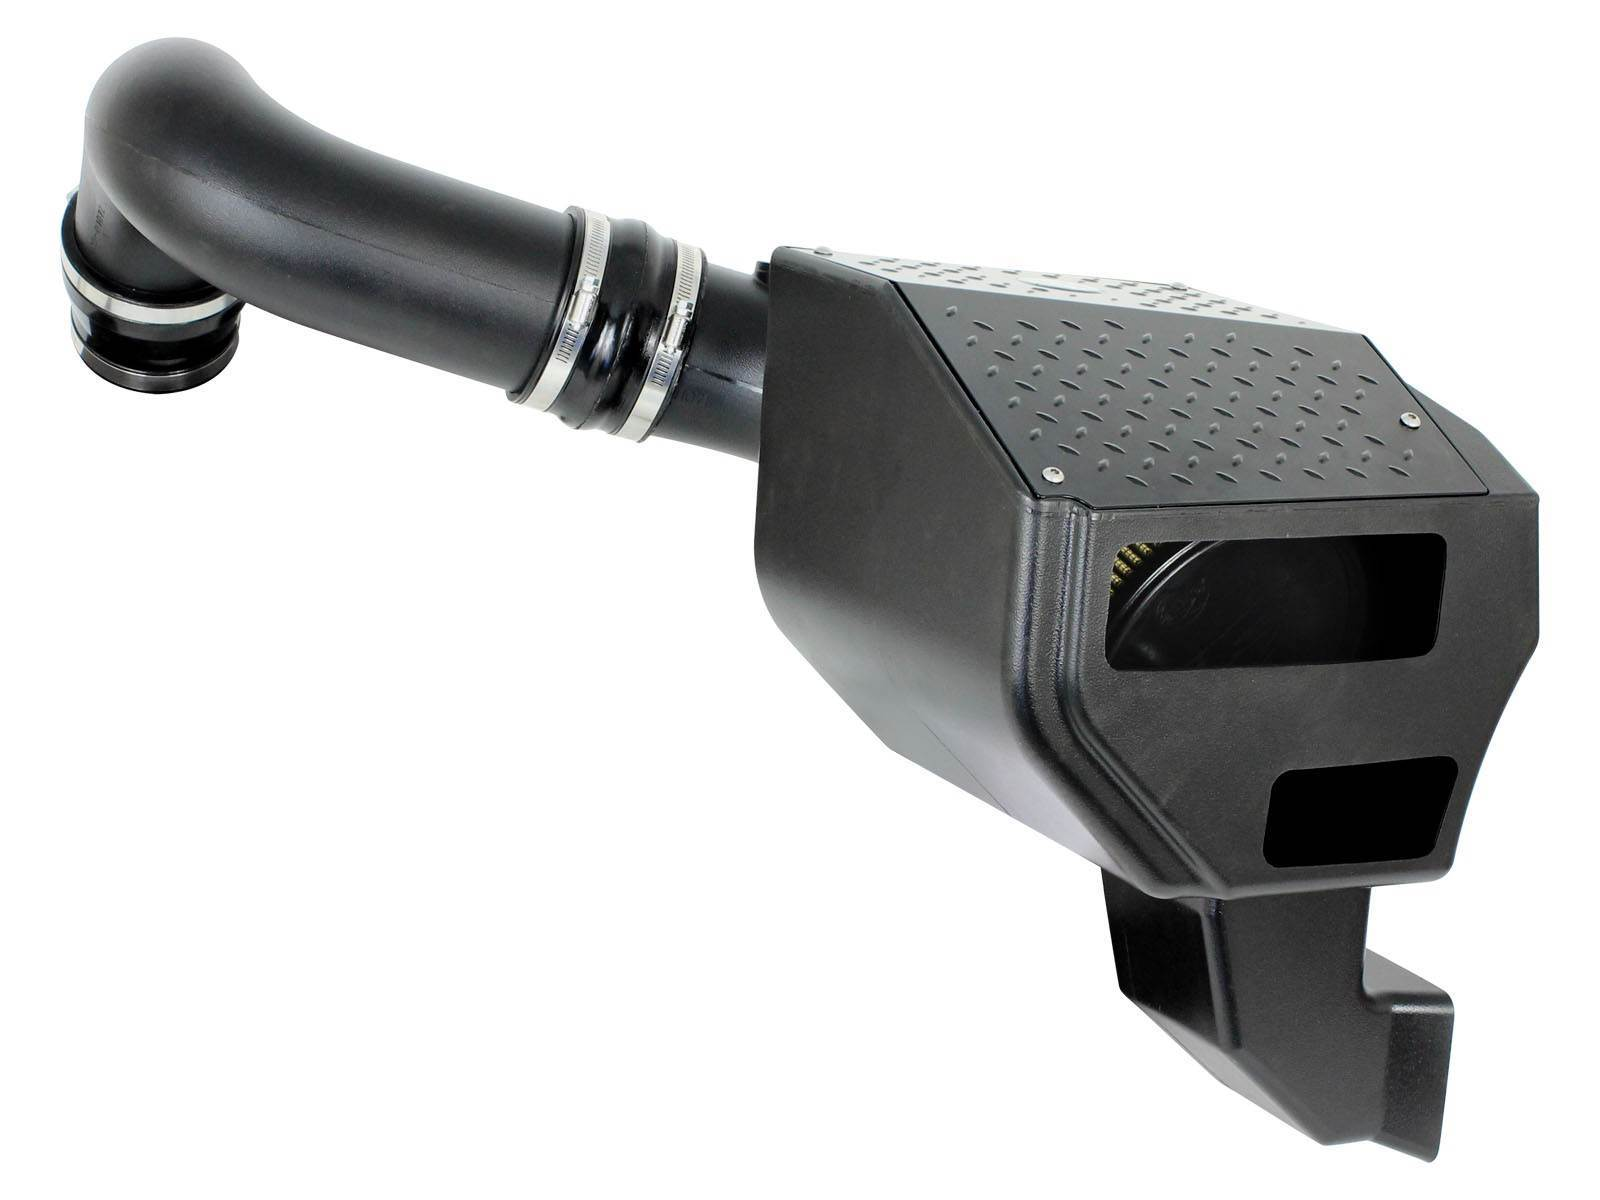 75-80612 - aFE Pro Guard 7 Type Si Performance Cold Air Intake System for 2004.5-2005 GMC/Chevy Duramax 6.6L LLY diesels